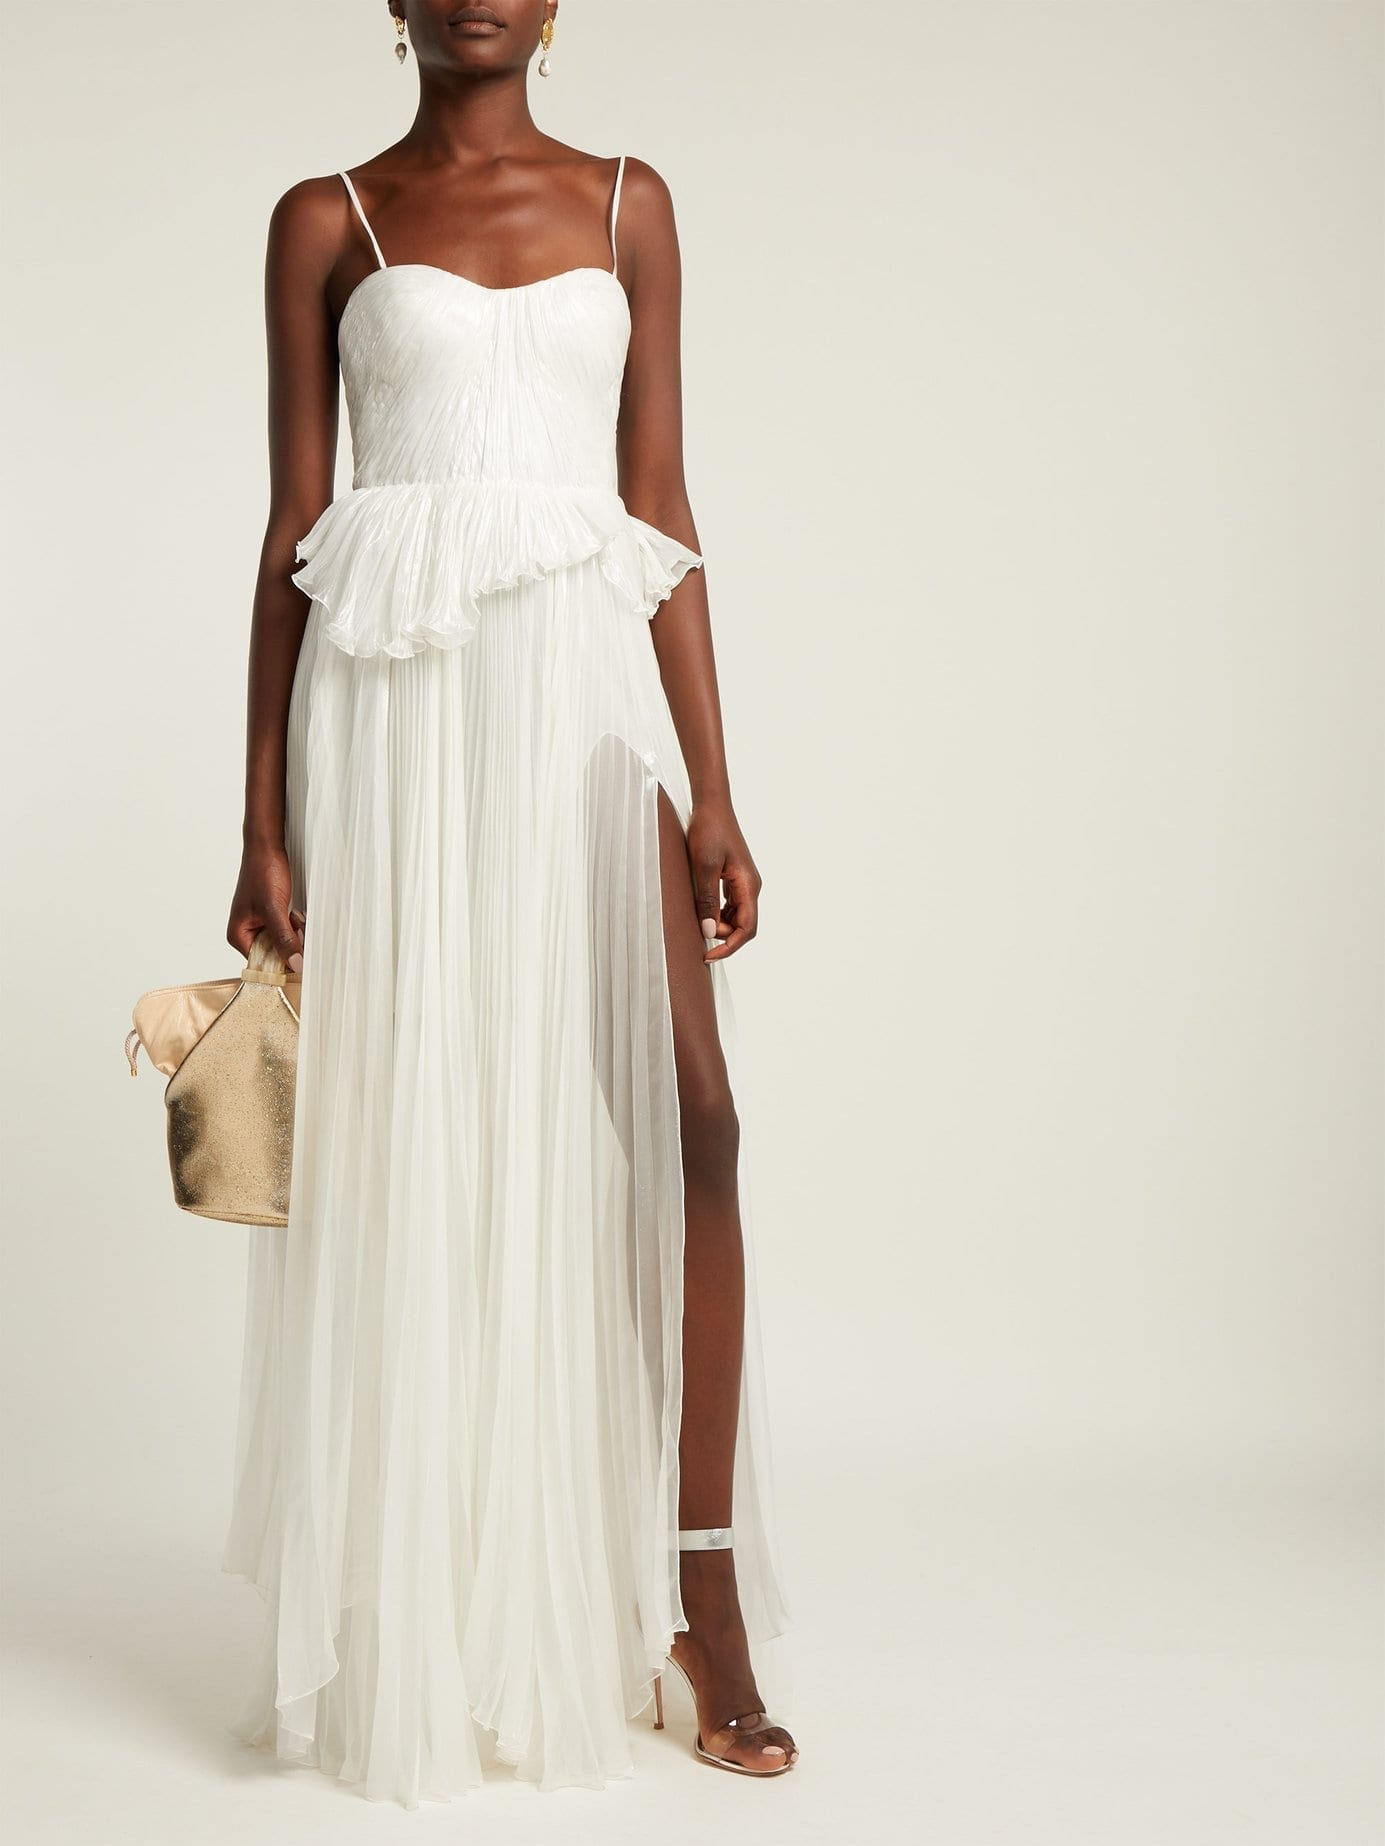 598c3c1d0d2e MARIA LUCIA HOHAN Godiva Pleated Silk Blend White Gown - We Select ...